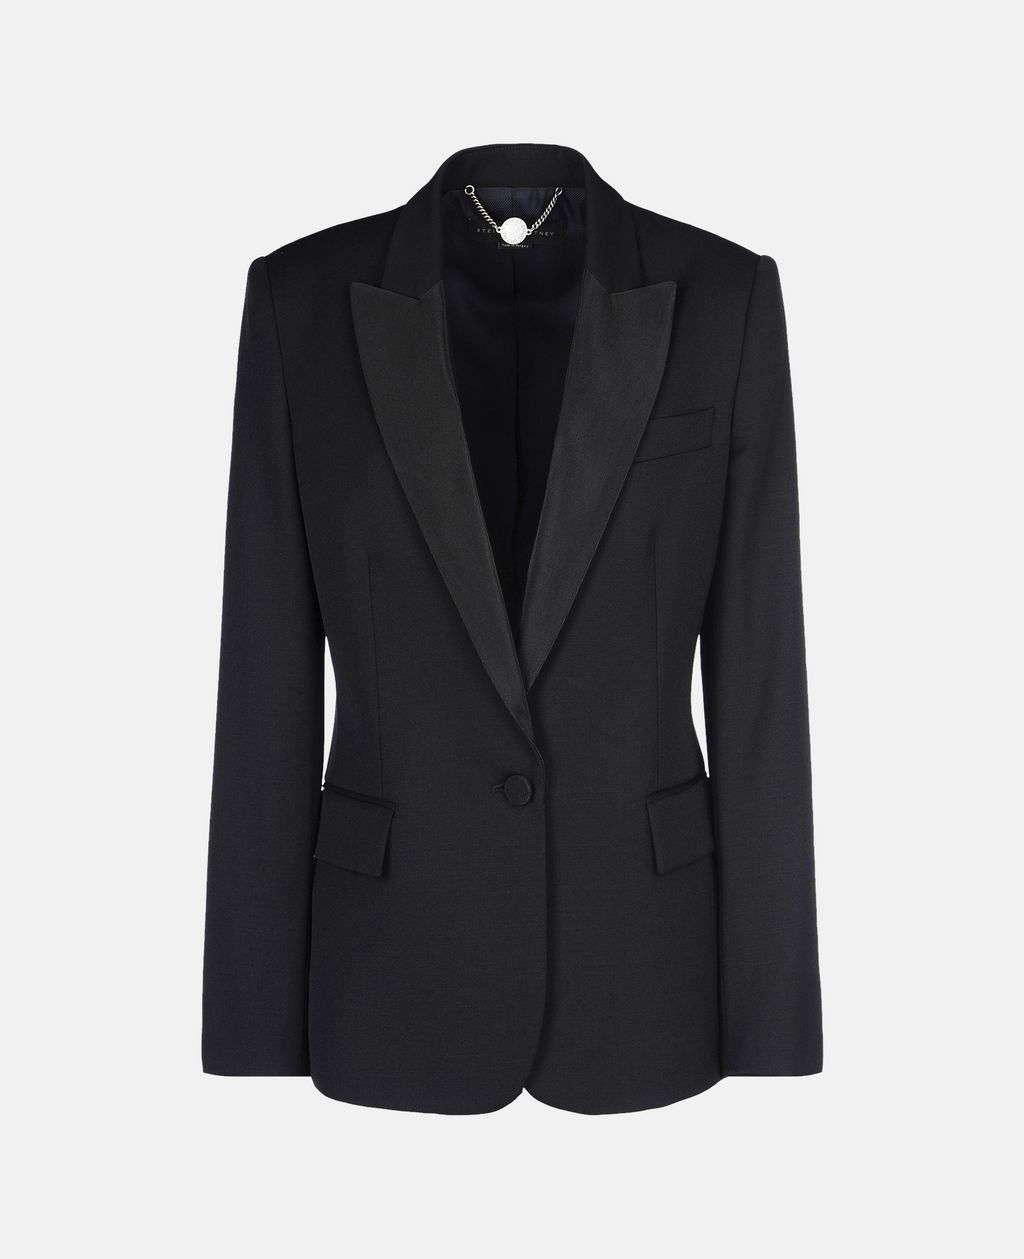 Black Tuxedo Ingrid Jacket - STELLA MCCARTNEY